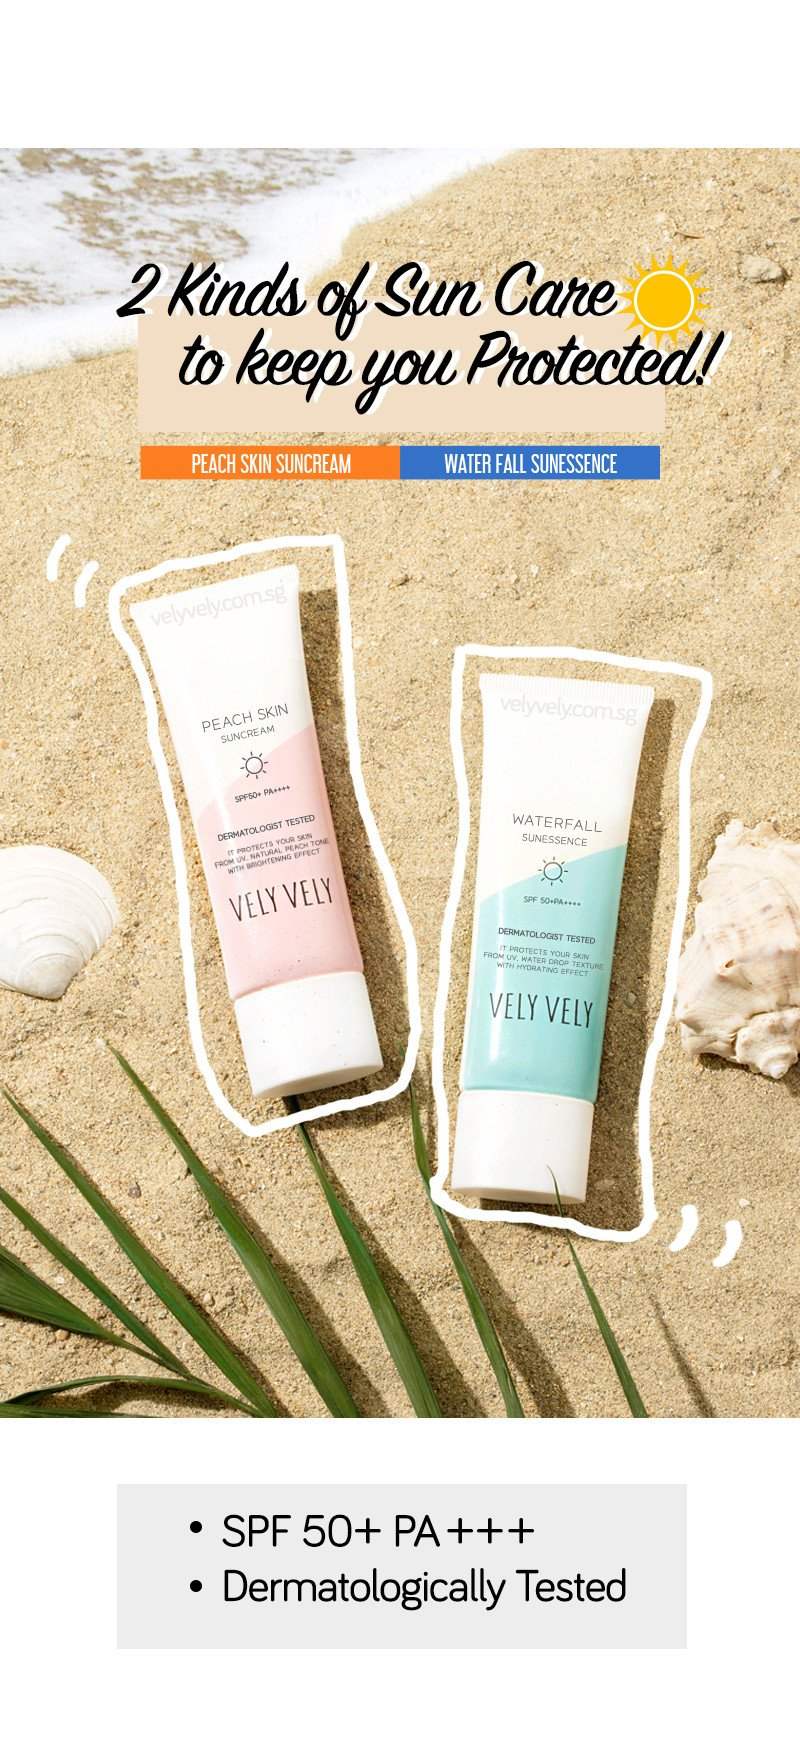 Korea's Cosmetic Brand, Vely Vely Waterfall Sunessence Sunblock